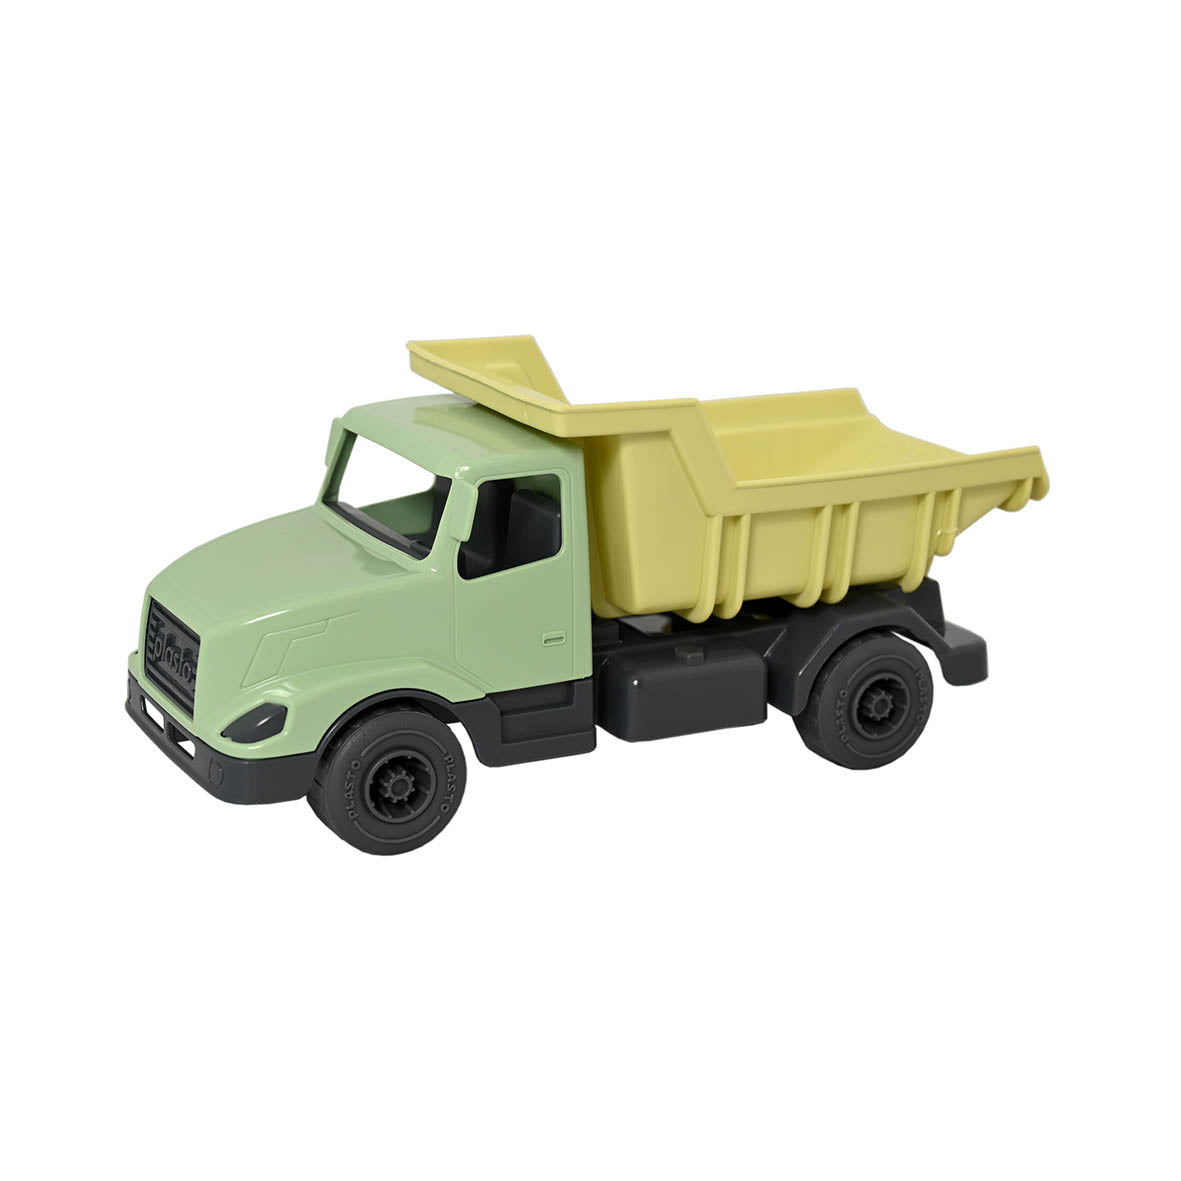 PLASTO I'm Green Tipper Truck, Small